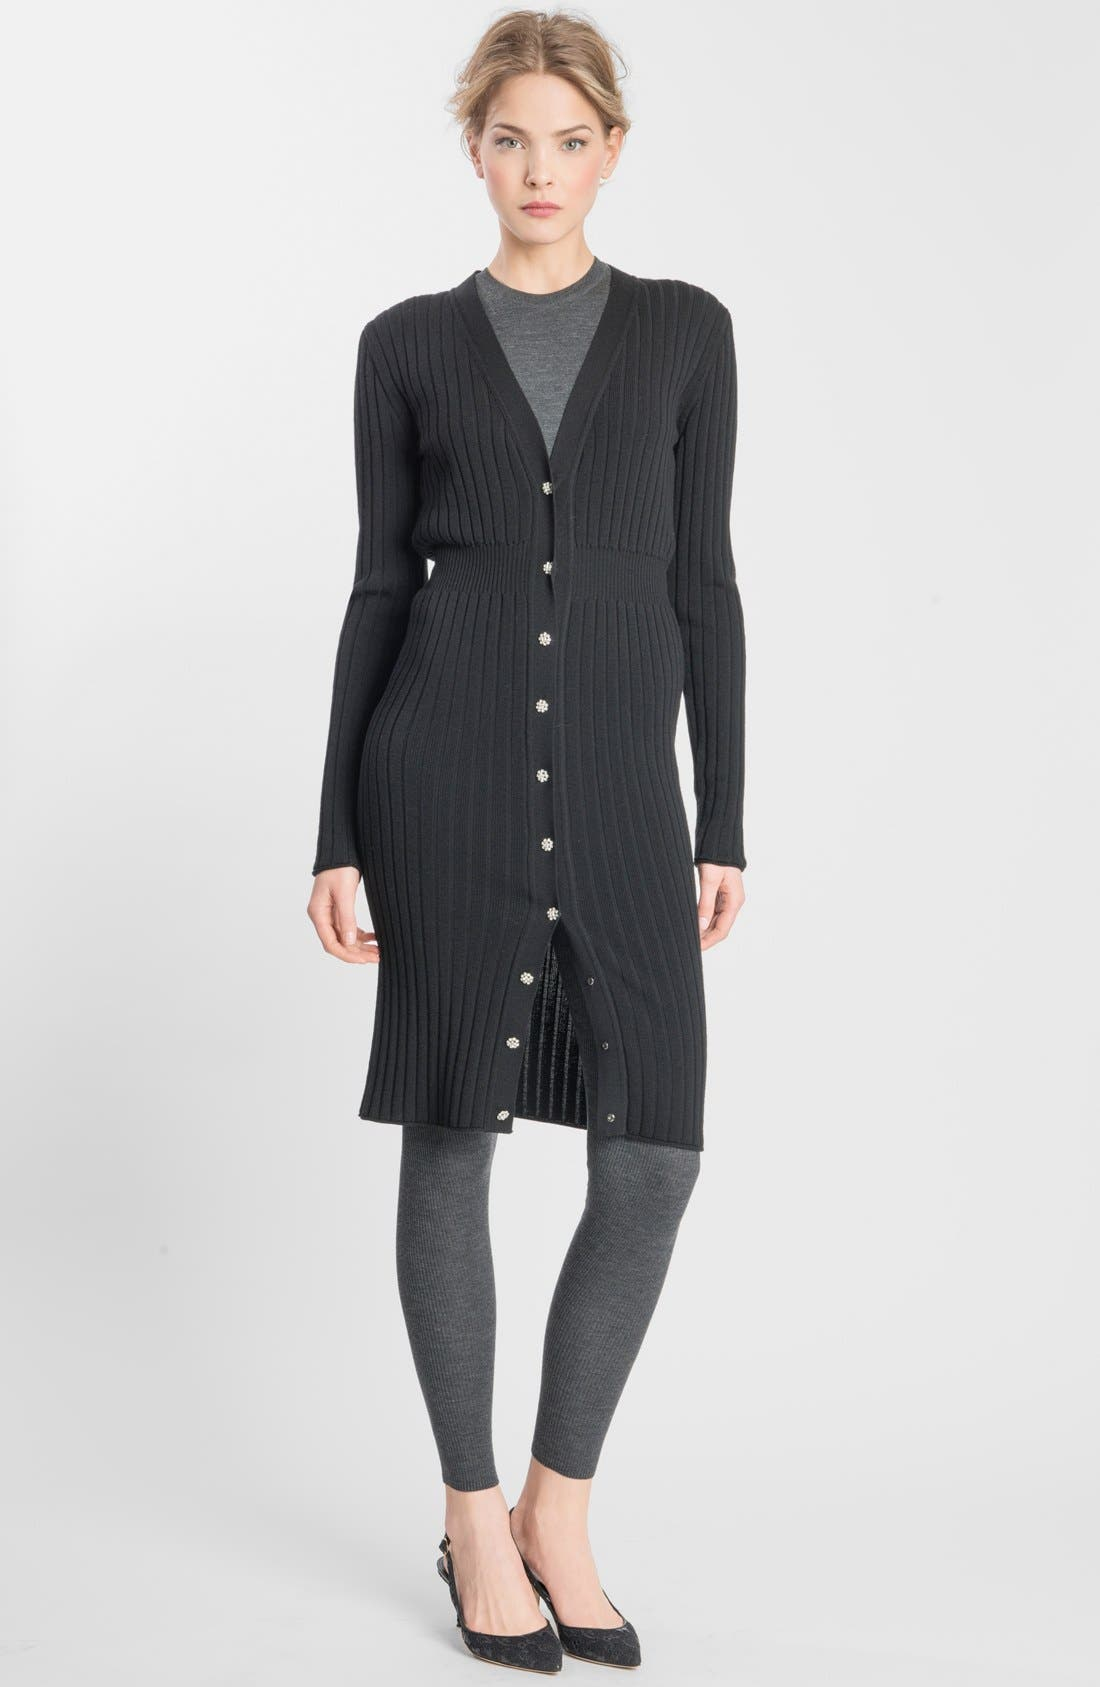 Main Image - Dolce&Gabbana Crystal Button Ribbed Wool Sweater Dress